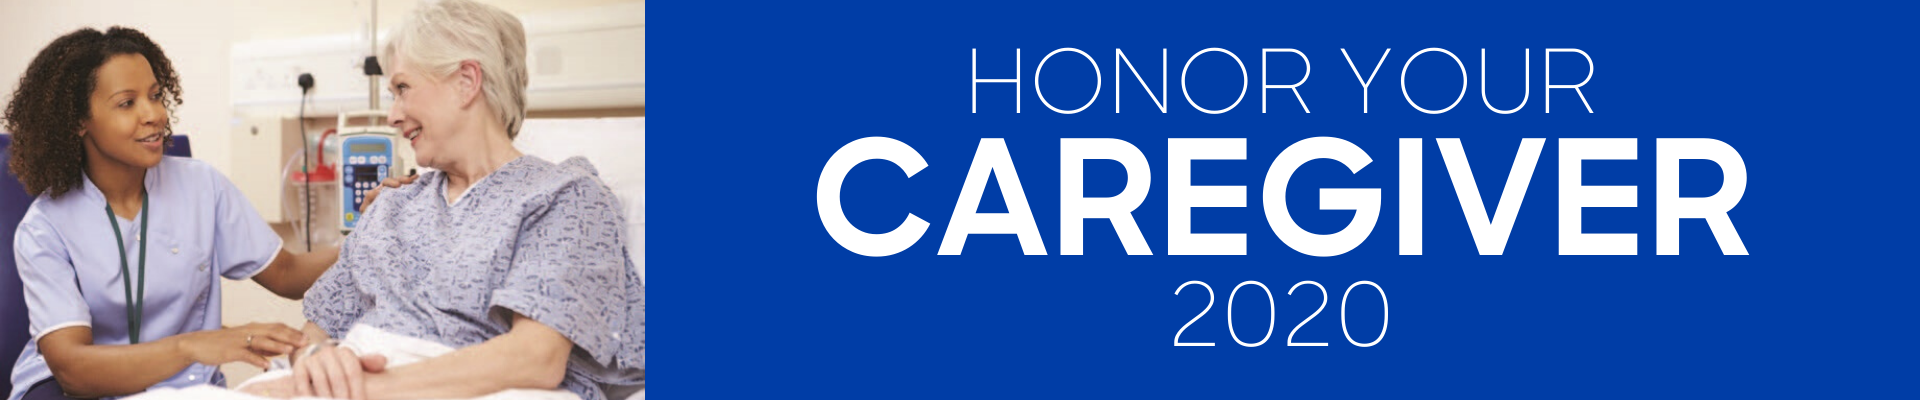 Honor Your Caregiver